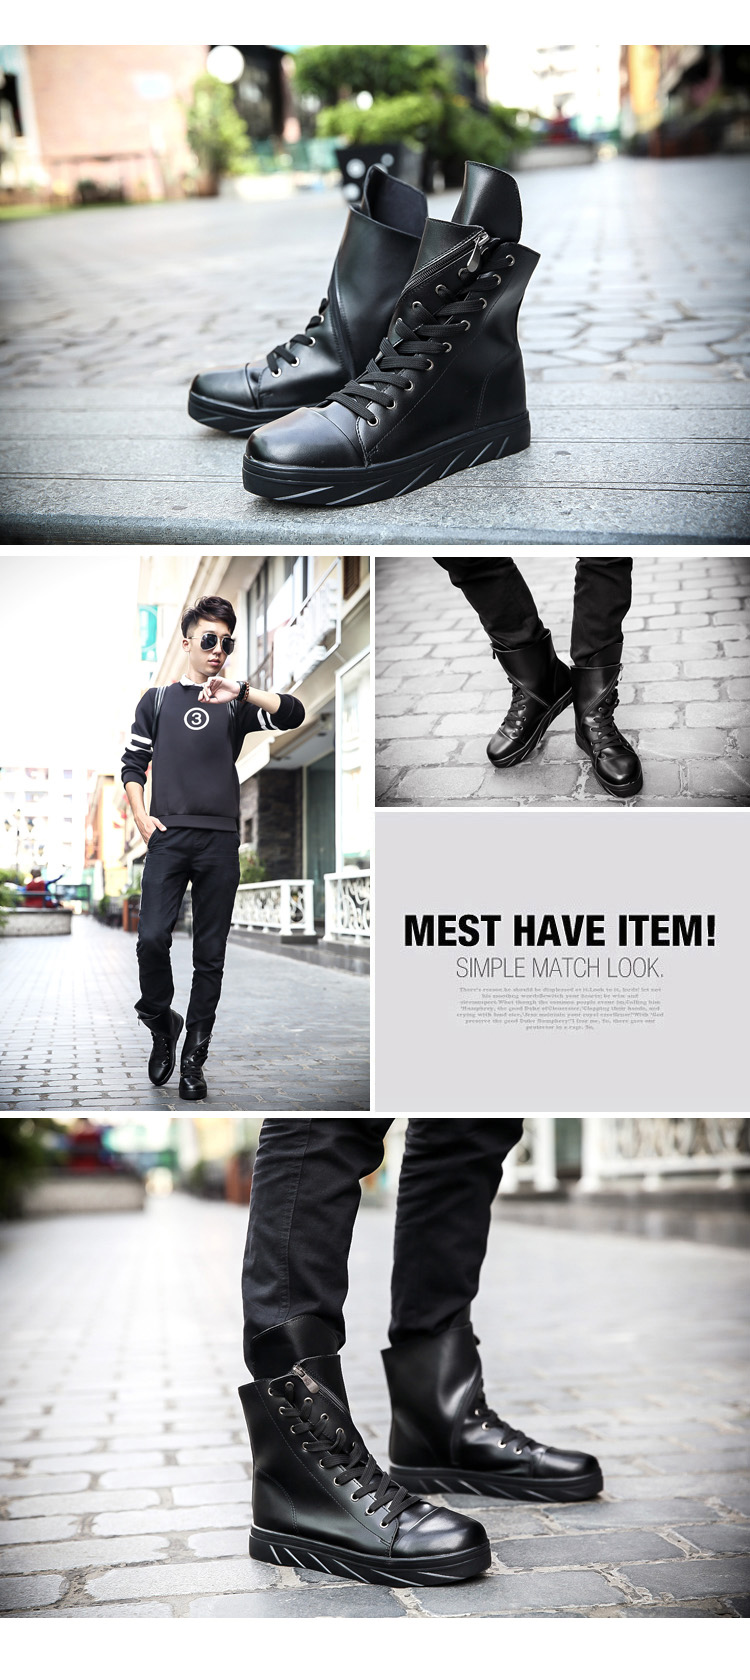 Ascott The New Kobron Men's Hip Hop Boots Martin Boots Leisure High Boots Black Lace Unique Personality